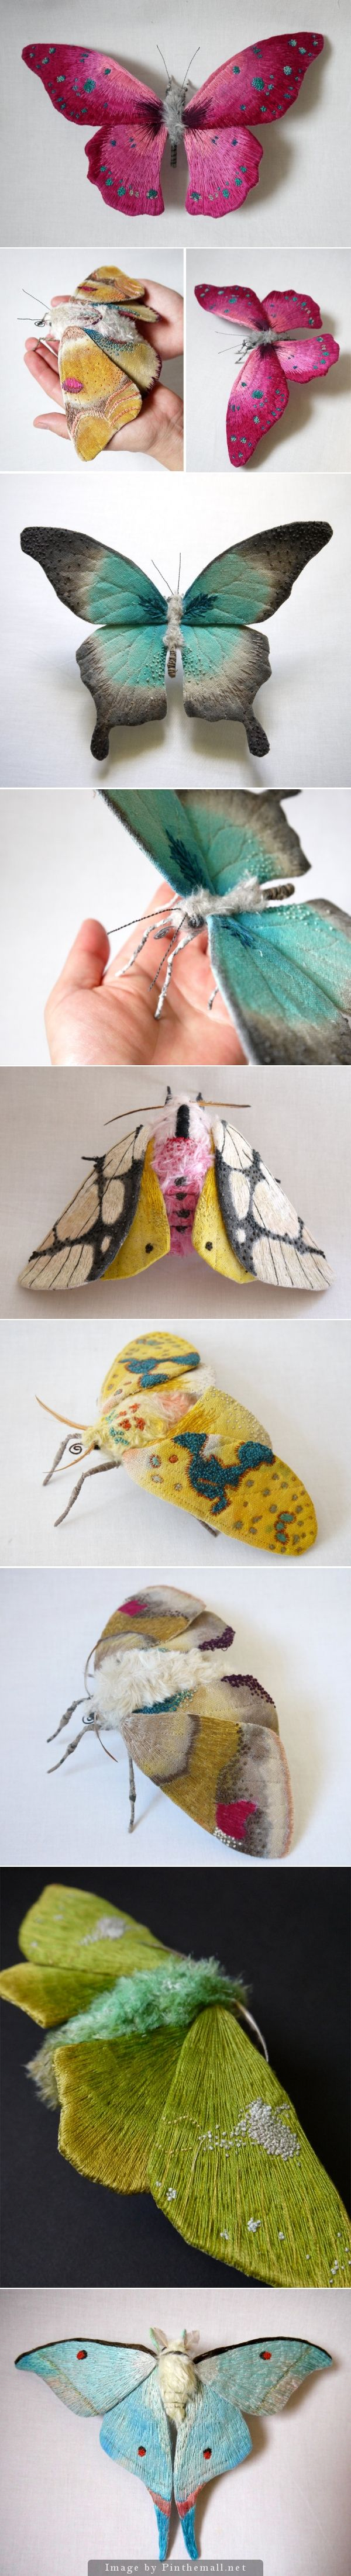 Yumi Okita textile sculptures. These are friggin beautiful. I love moths.